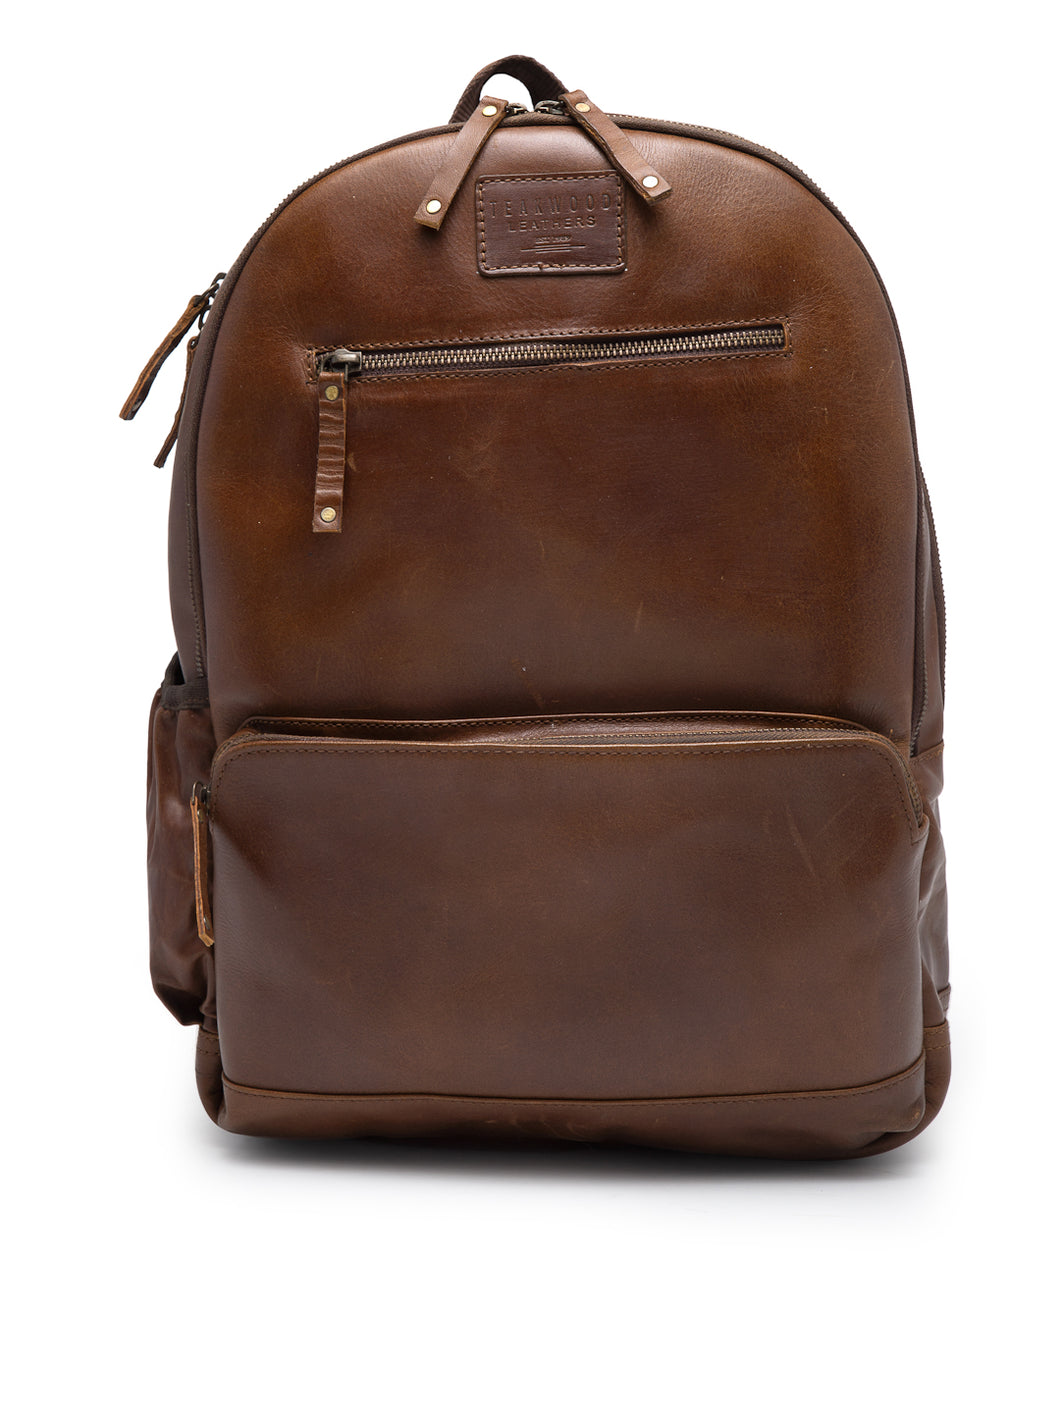 Teakwood Unisex Genuine Leather Tan Solid Backpack||Unisex Laptop Bag/Backpack